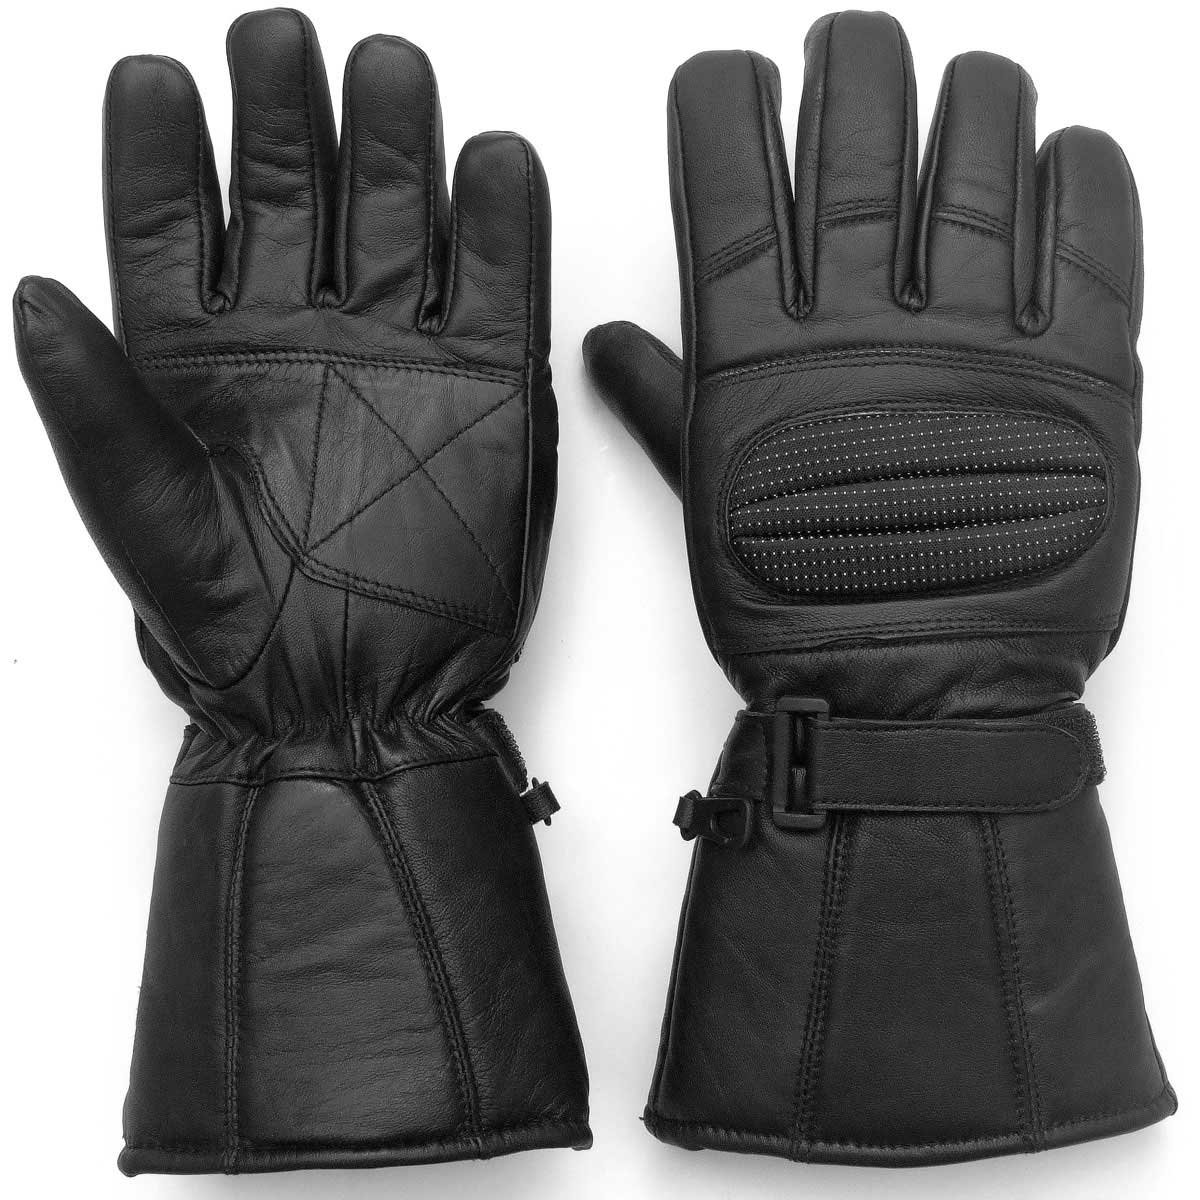 Leather gauntlet driving gloves - Amazon Com Leather Gloves Gauntlet For Biker Motorcycle Scooter Heavy Duty Winter Black S Automotive